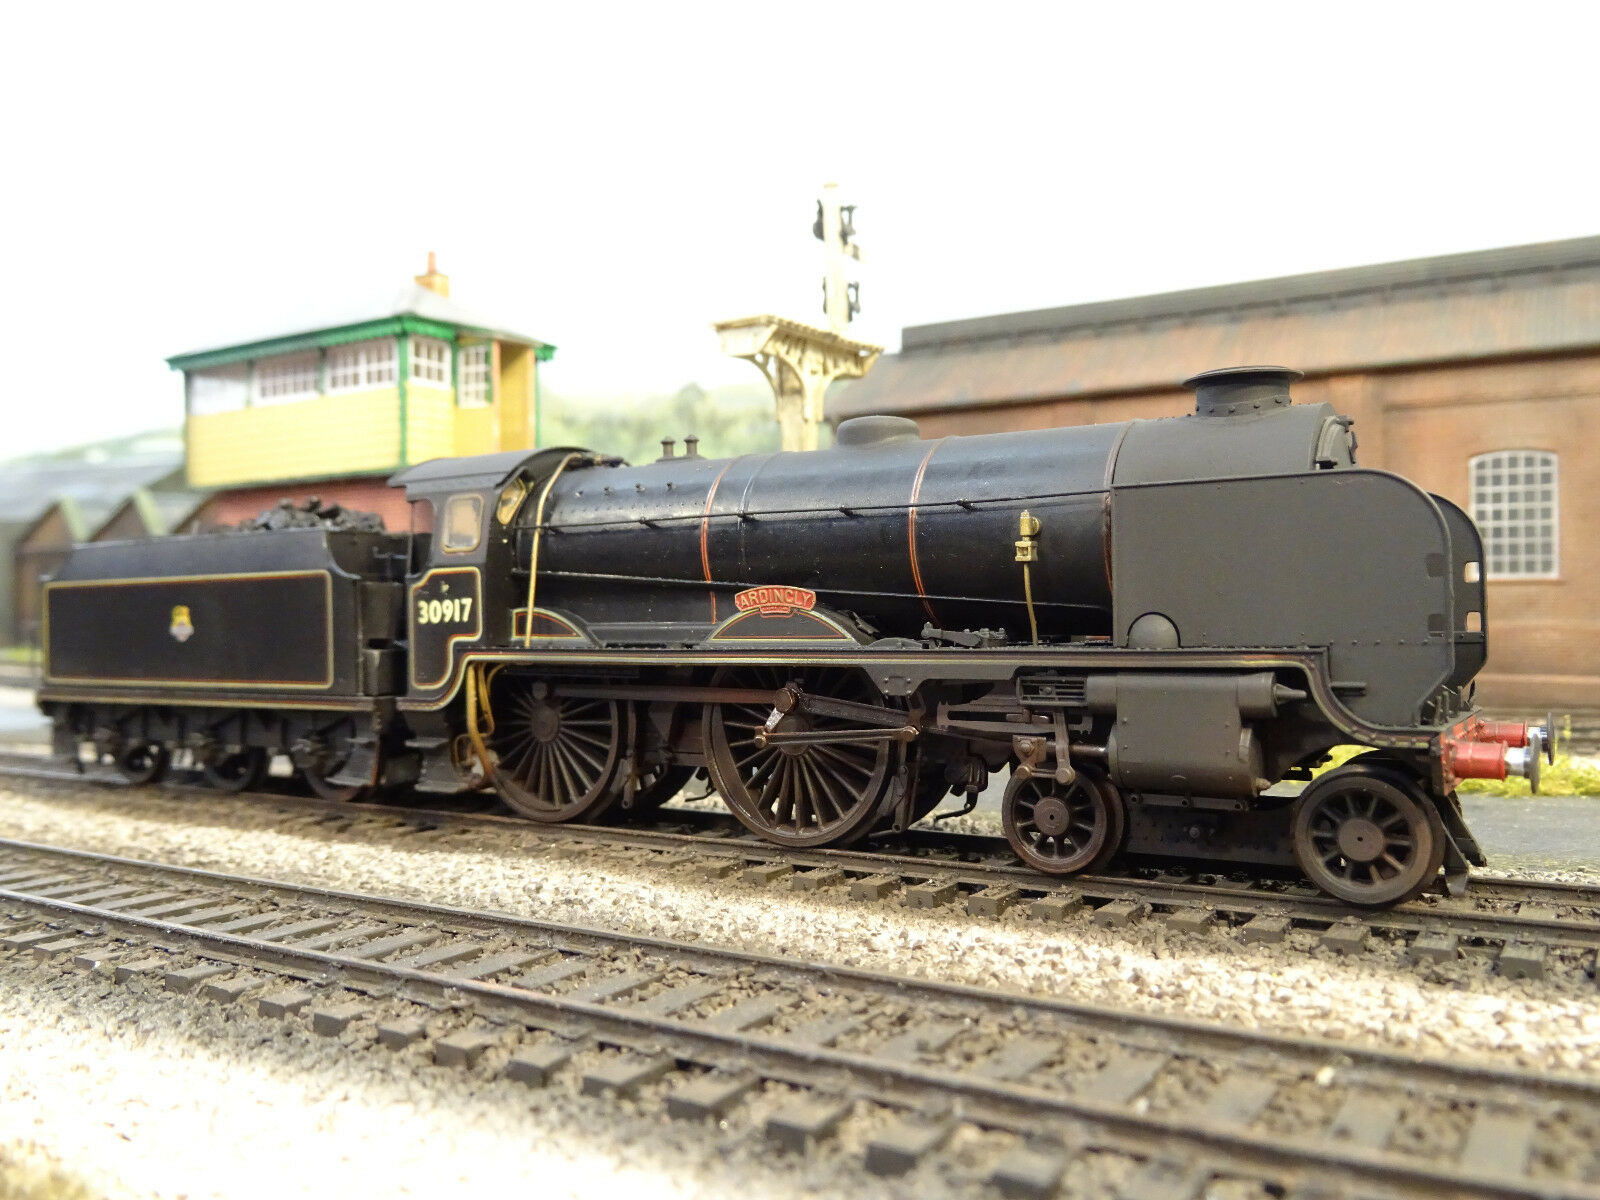 HORNBY BR SCHOOLS 30917 ARDINGLY (DETAILED LINESIDE WEATHERED) BOXED